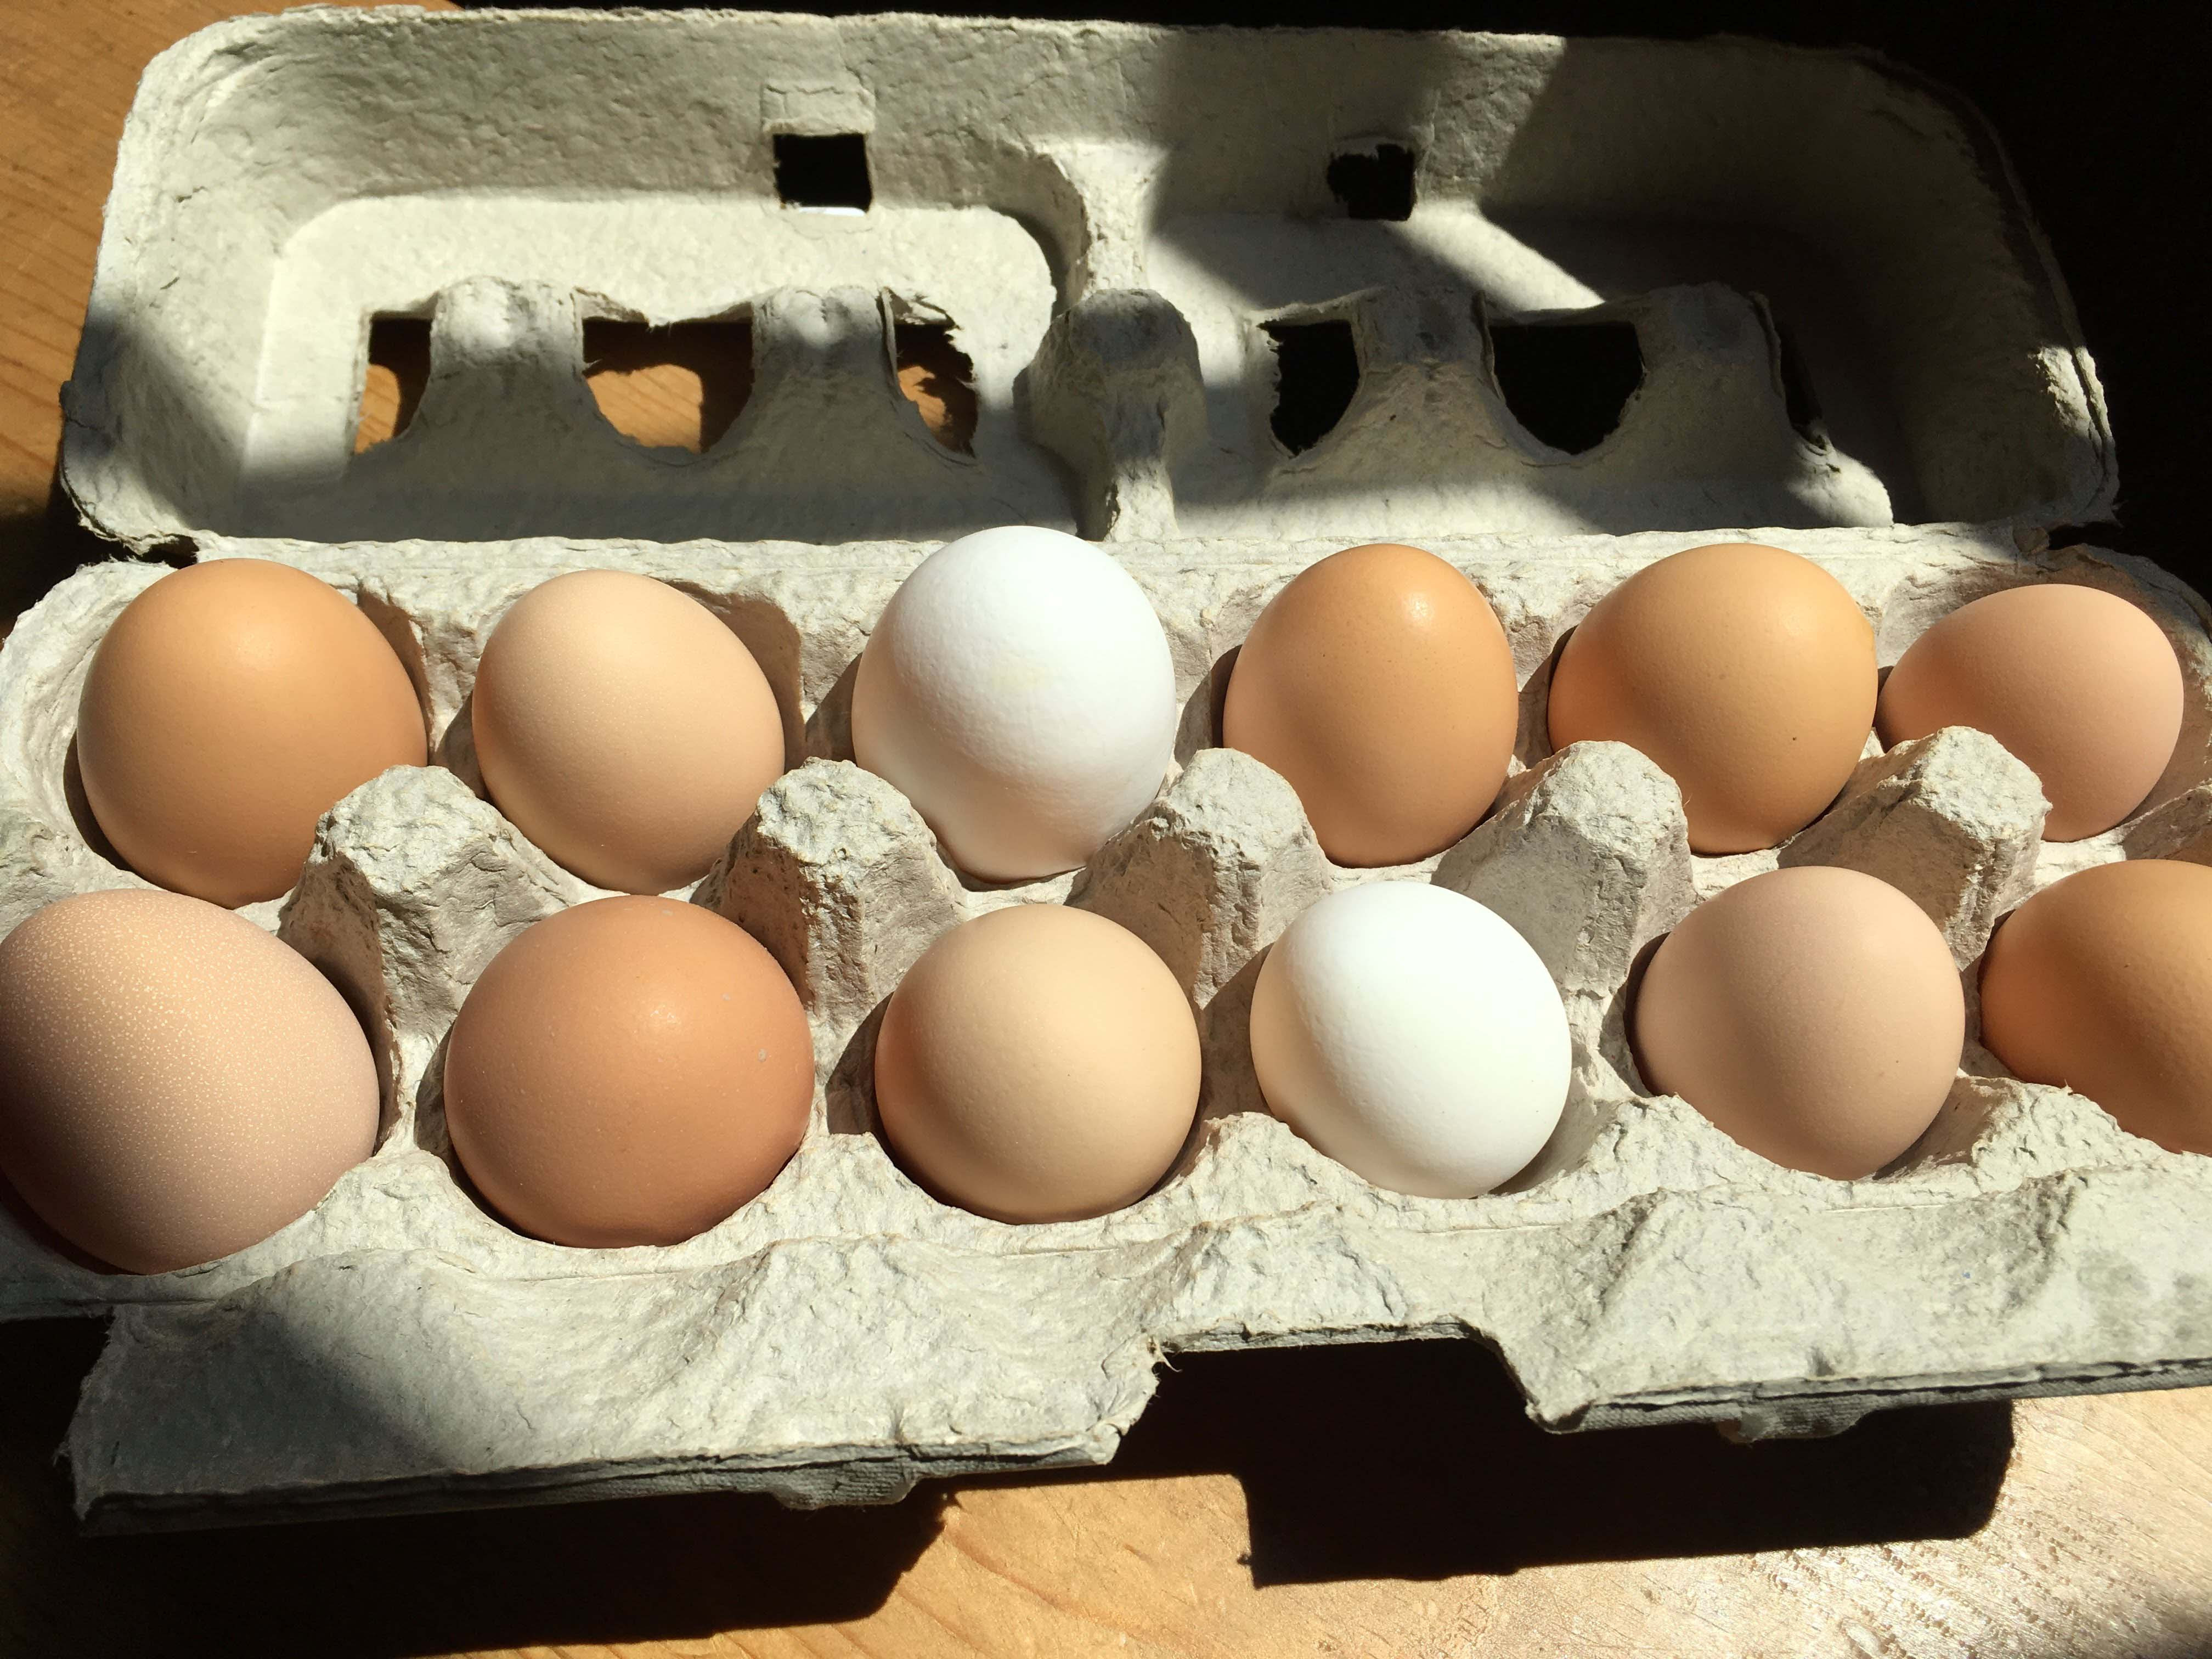 Eggs for Shelters